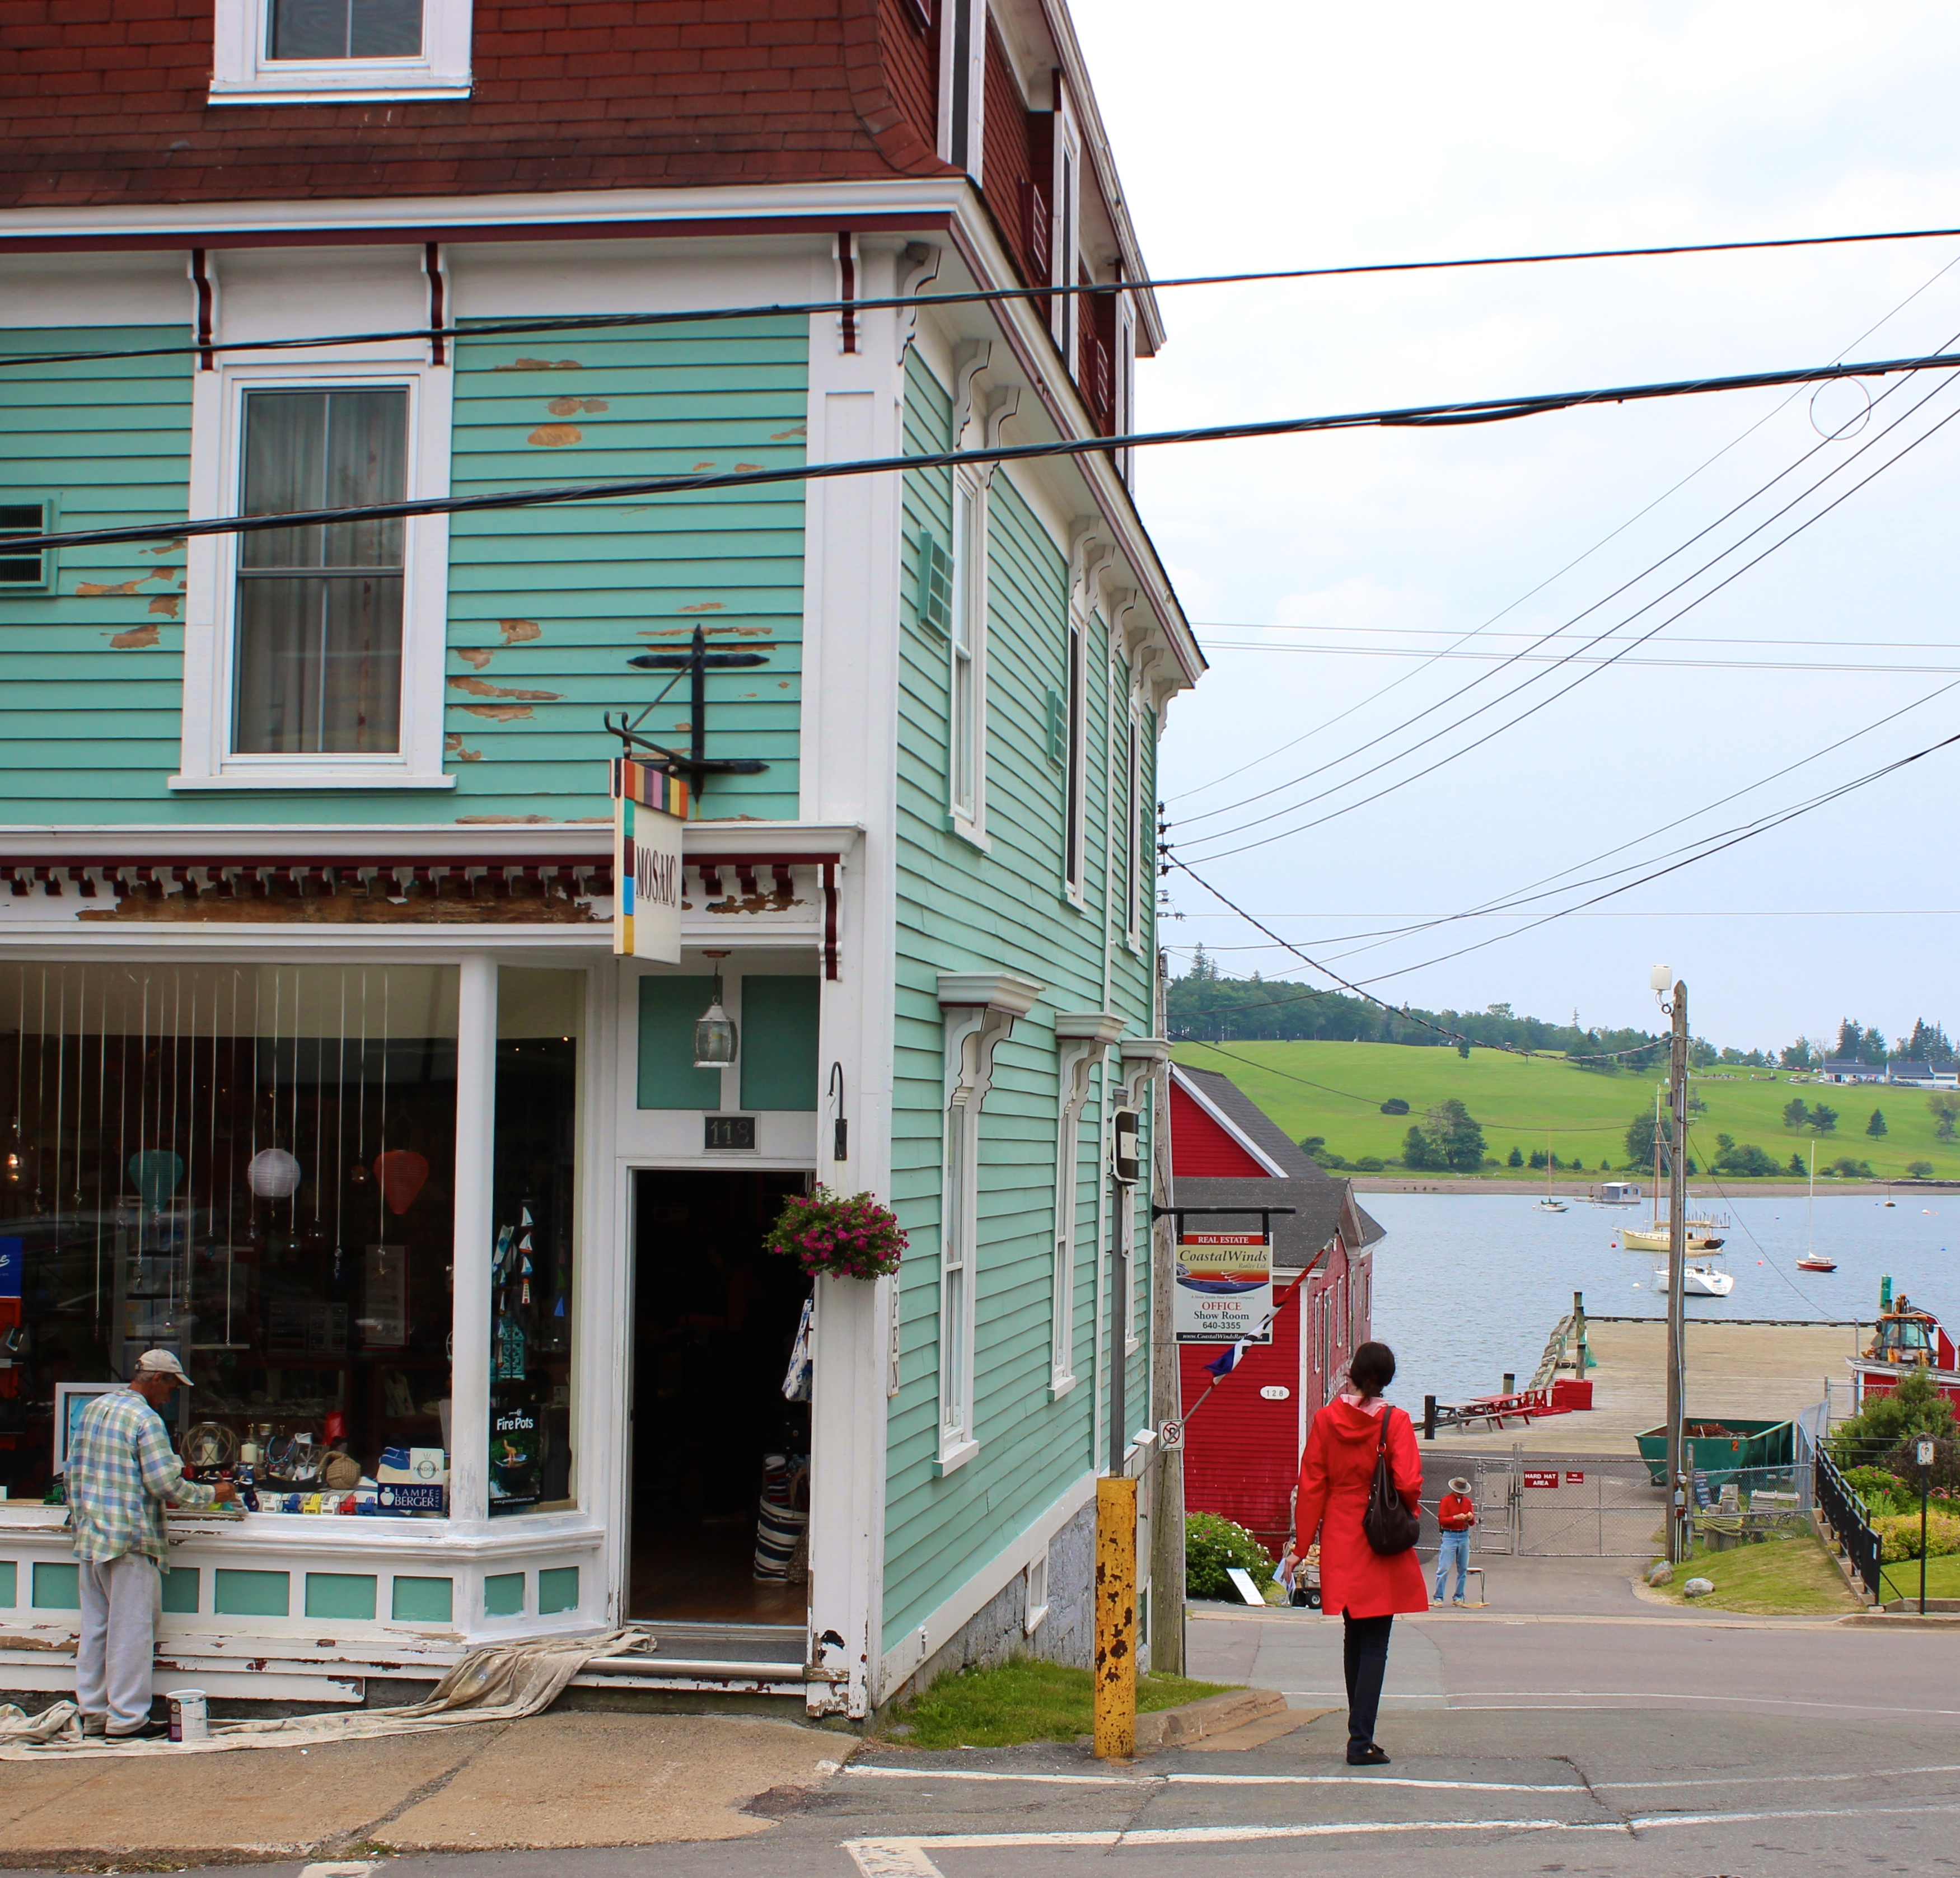 Colorful Lunenburg, Nova Scotia, Canada